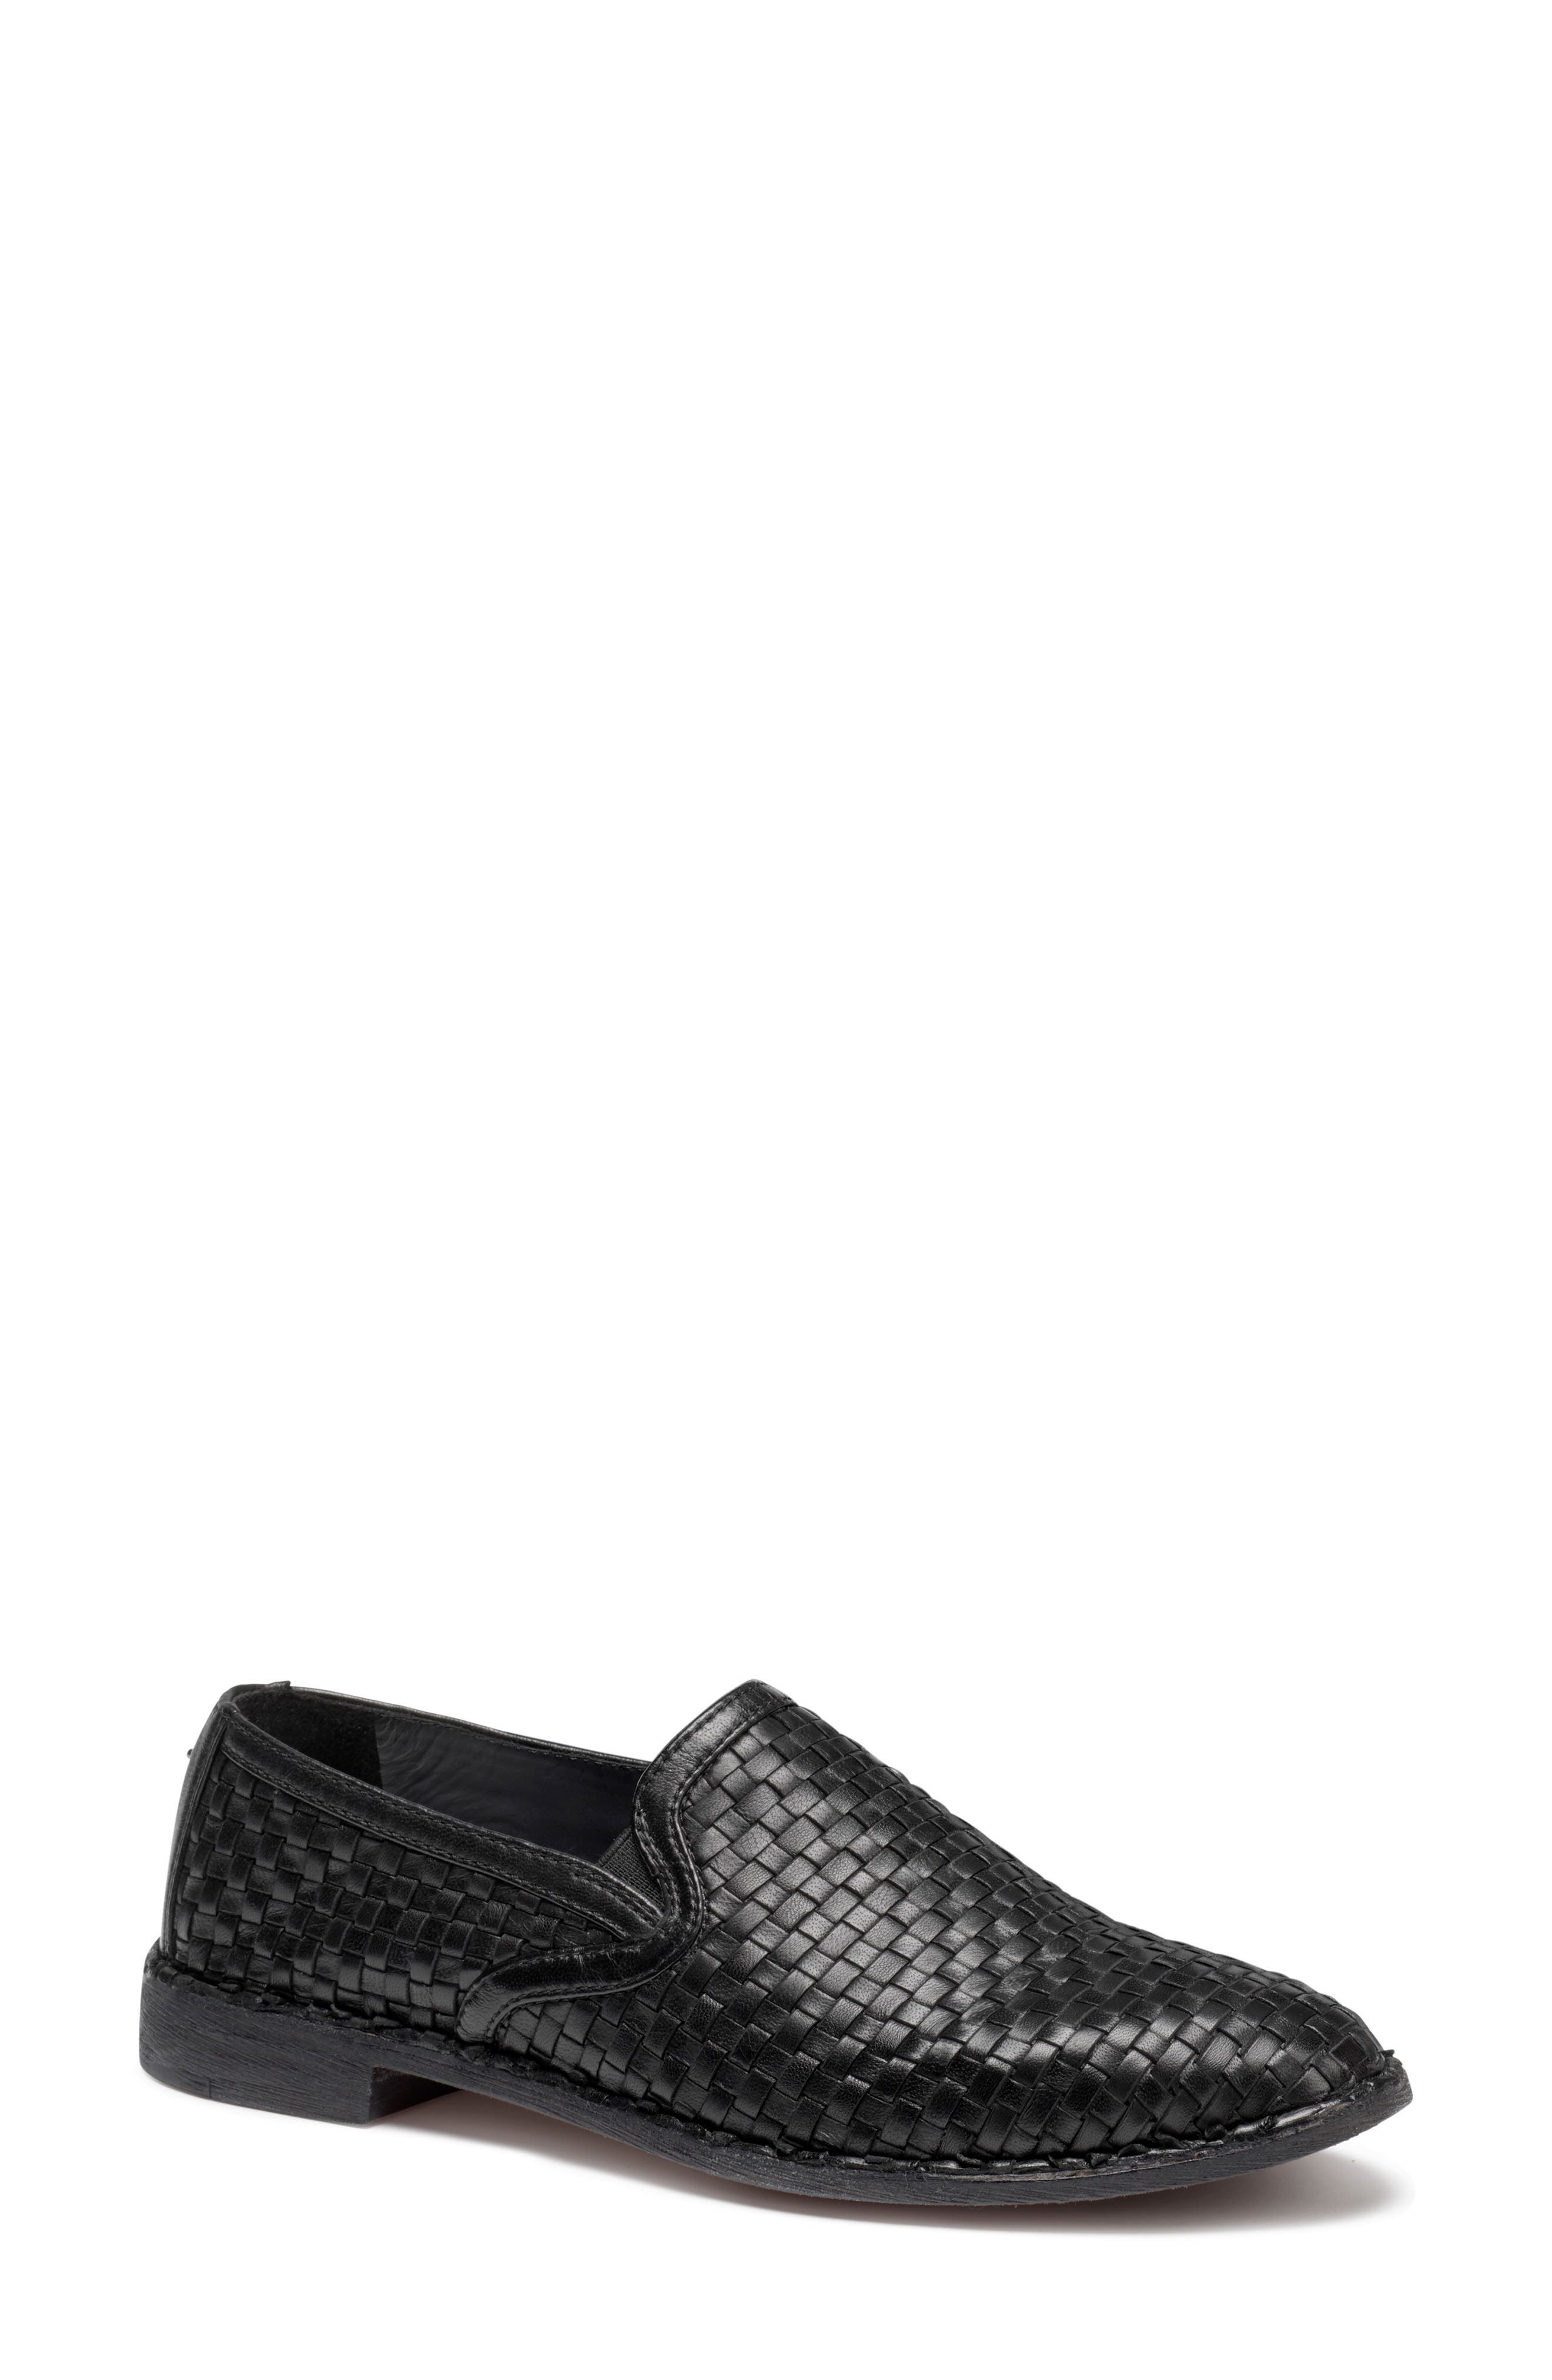 Amanda Woven Loafer,                             Main thumbnail 1, color,                             BLACK SUEDE